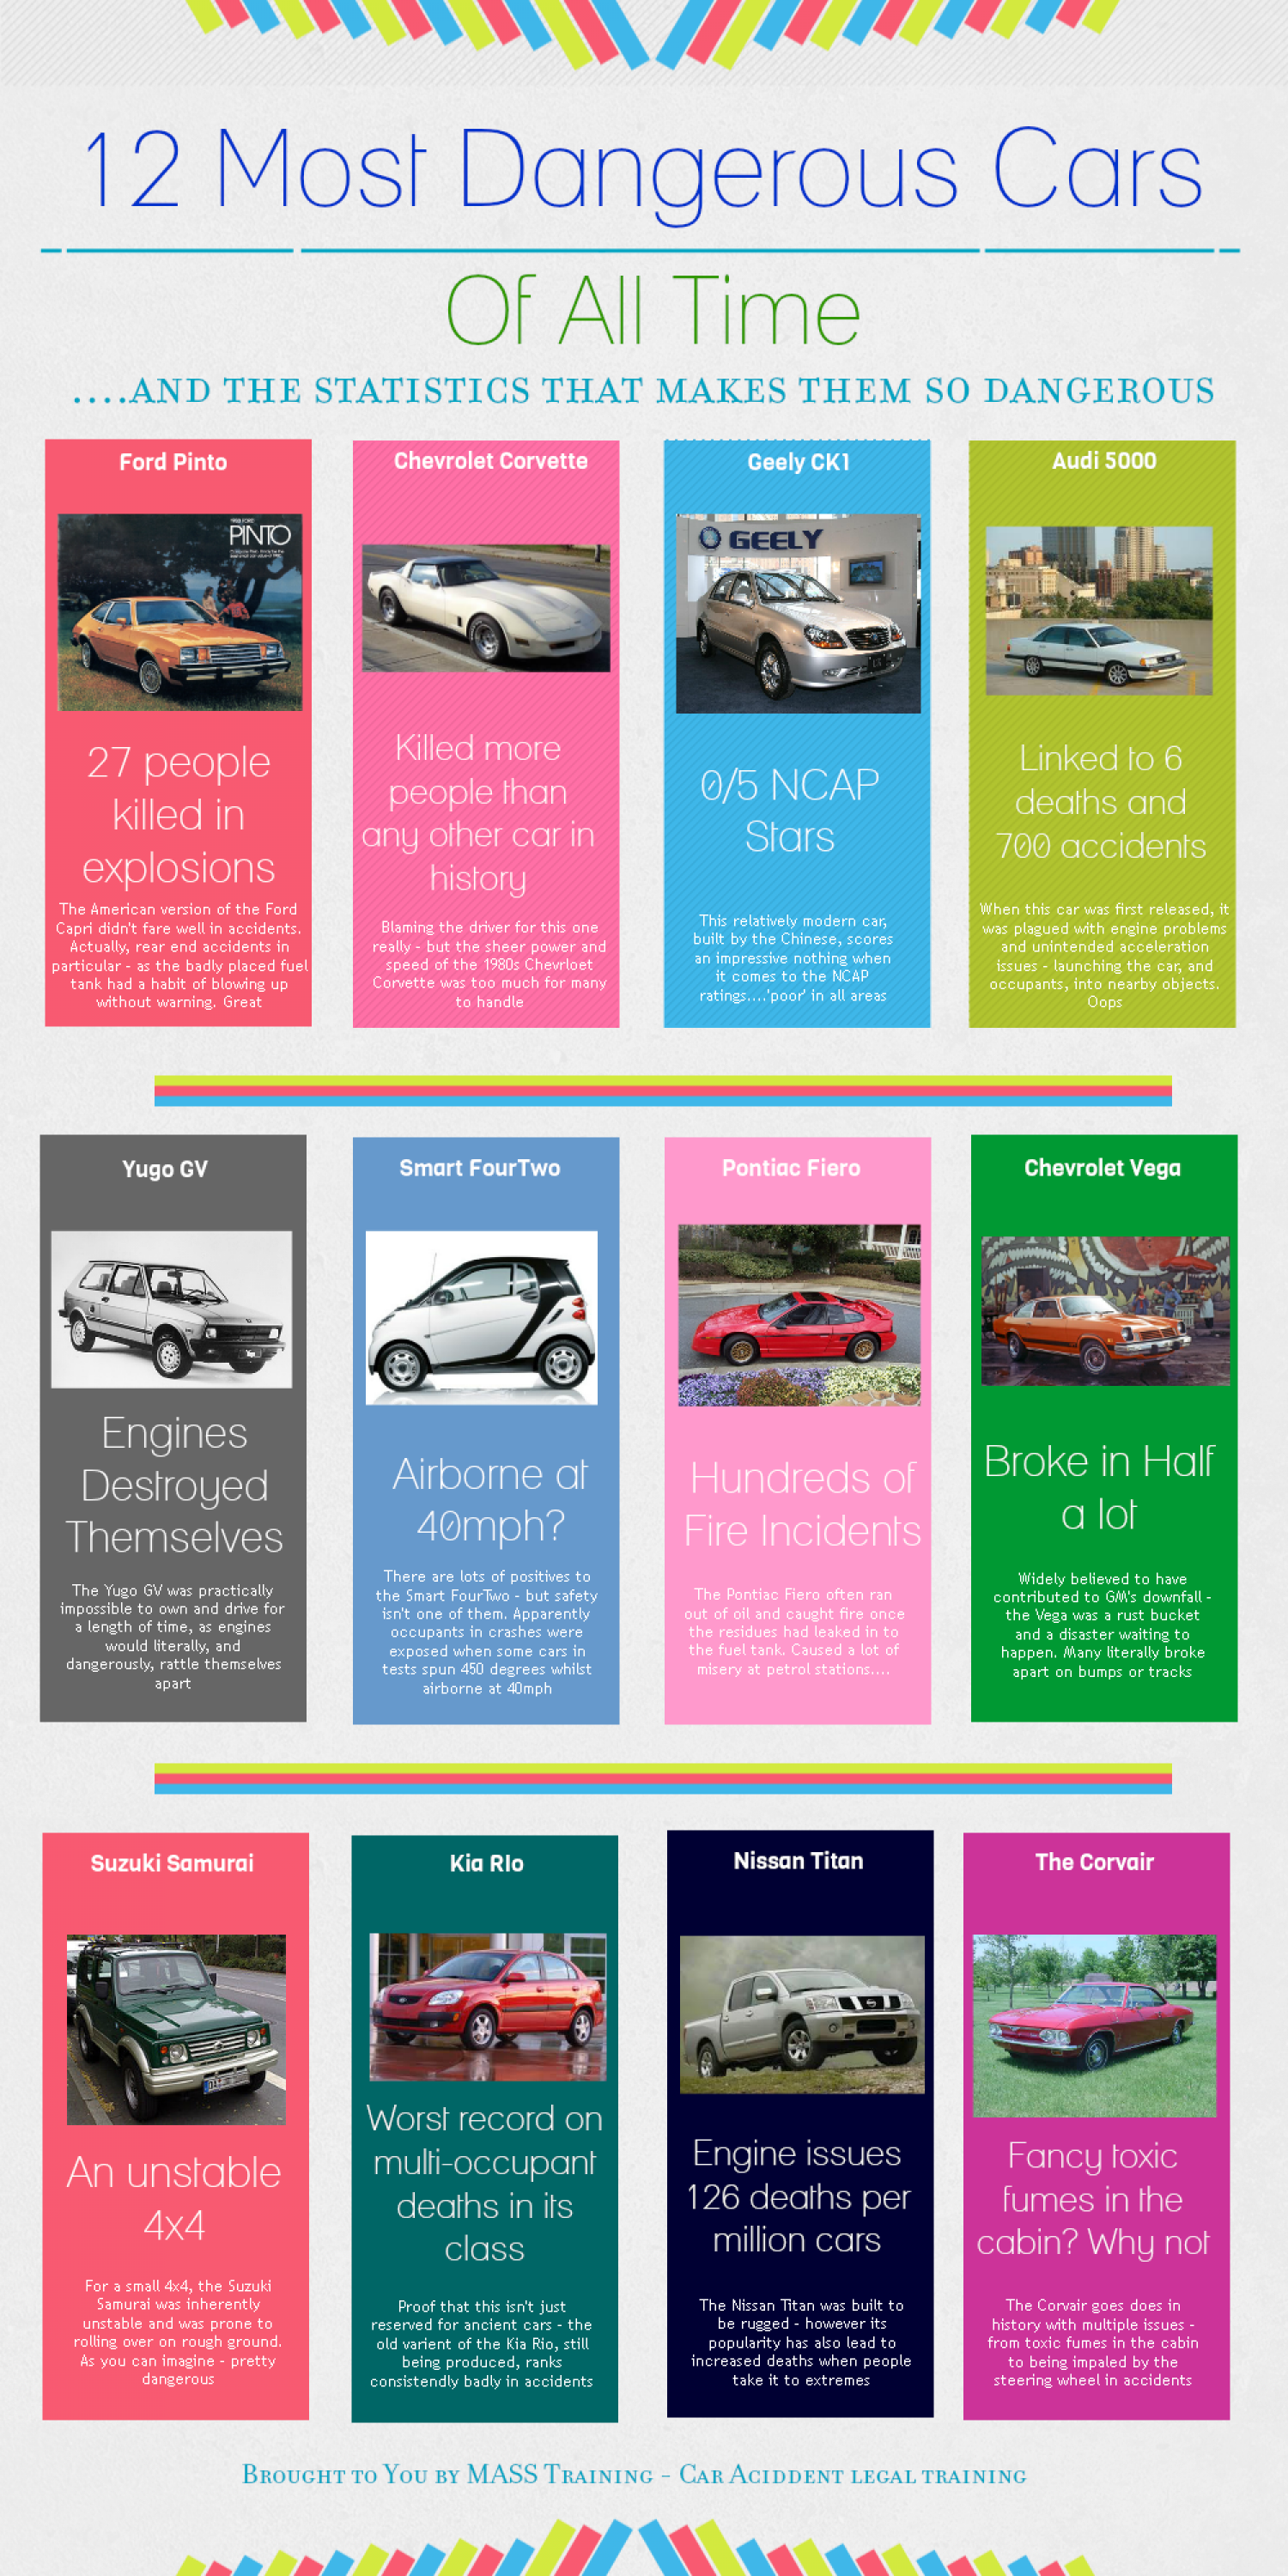 12 Most Dangerous Cars of all Time Infographic